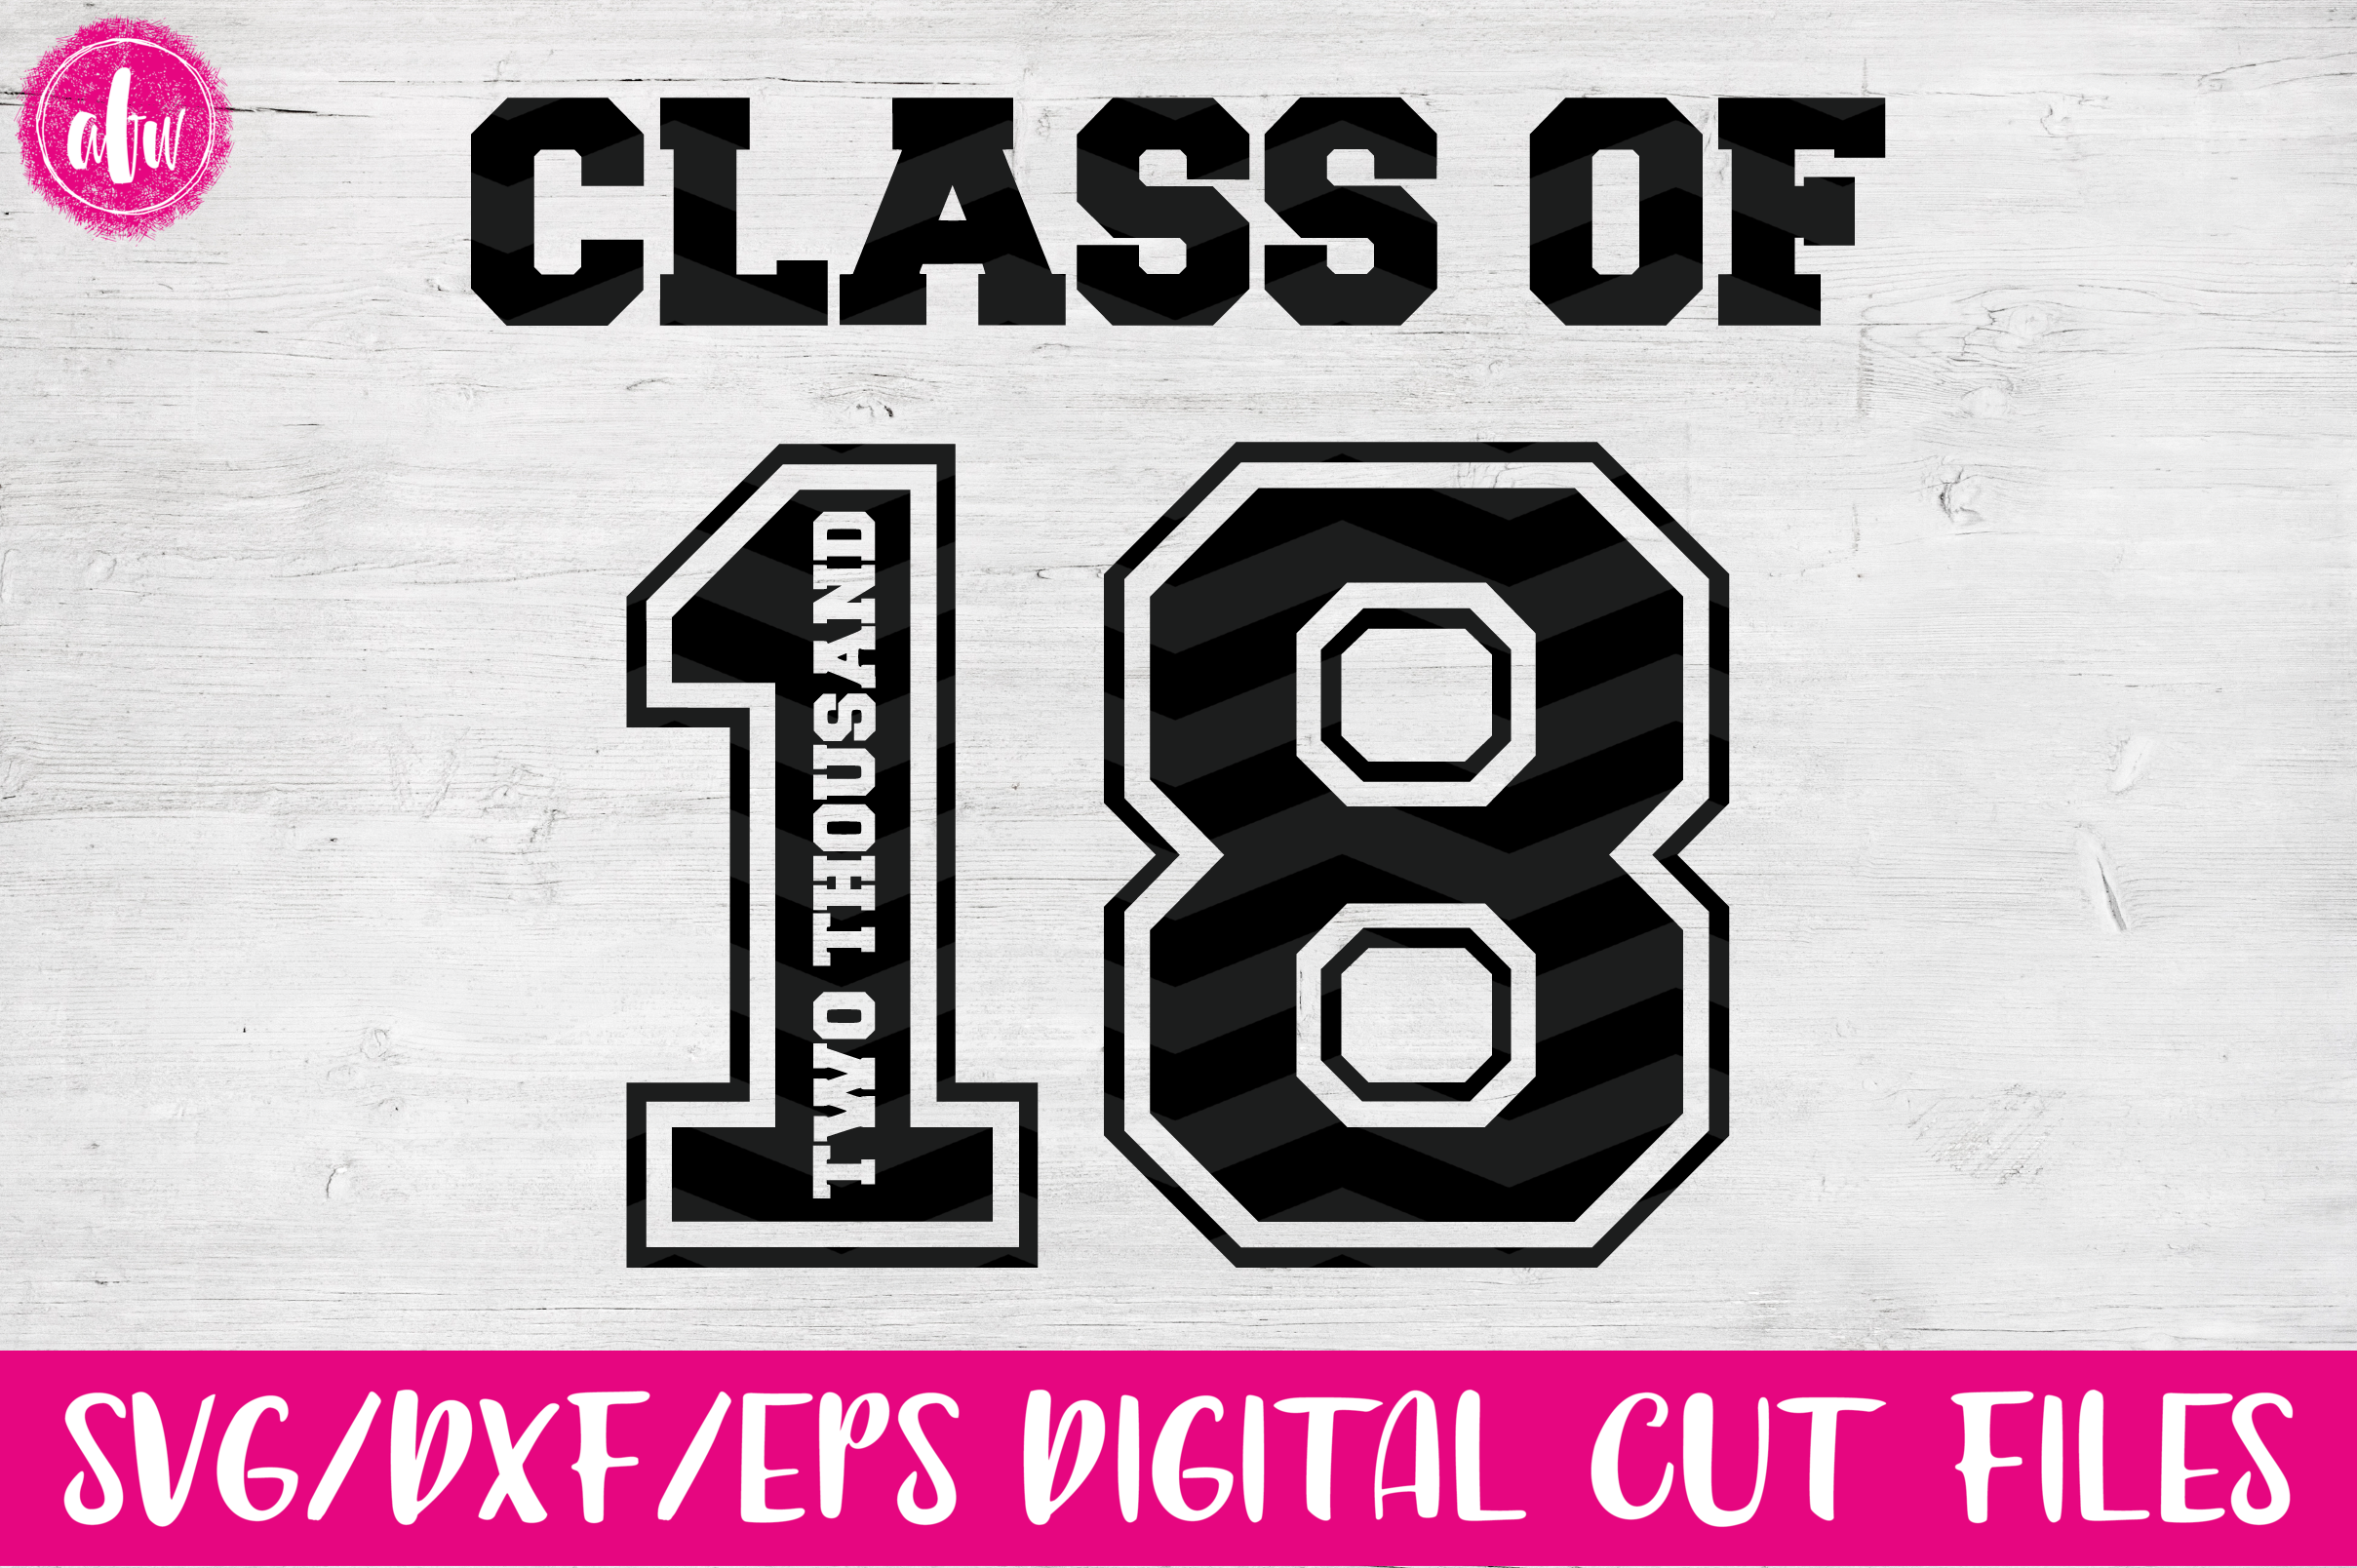 Graduation 2018 Bundle - SVG, DXF, EPS Cut Files example image 4